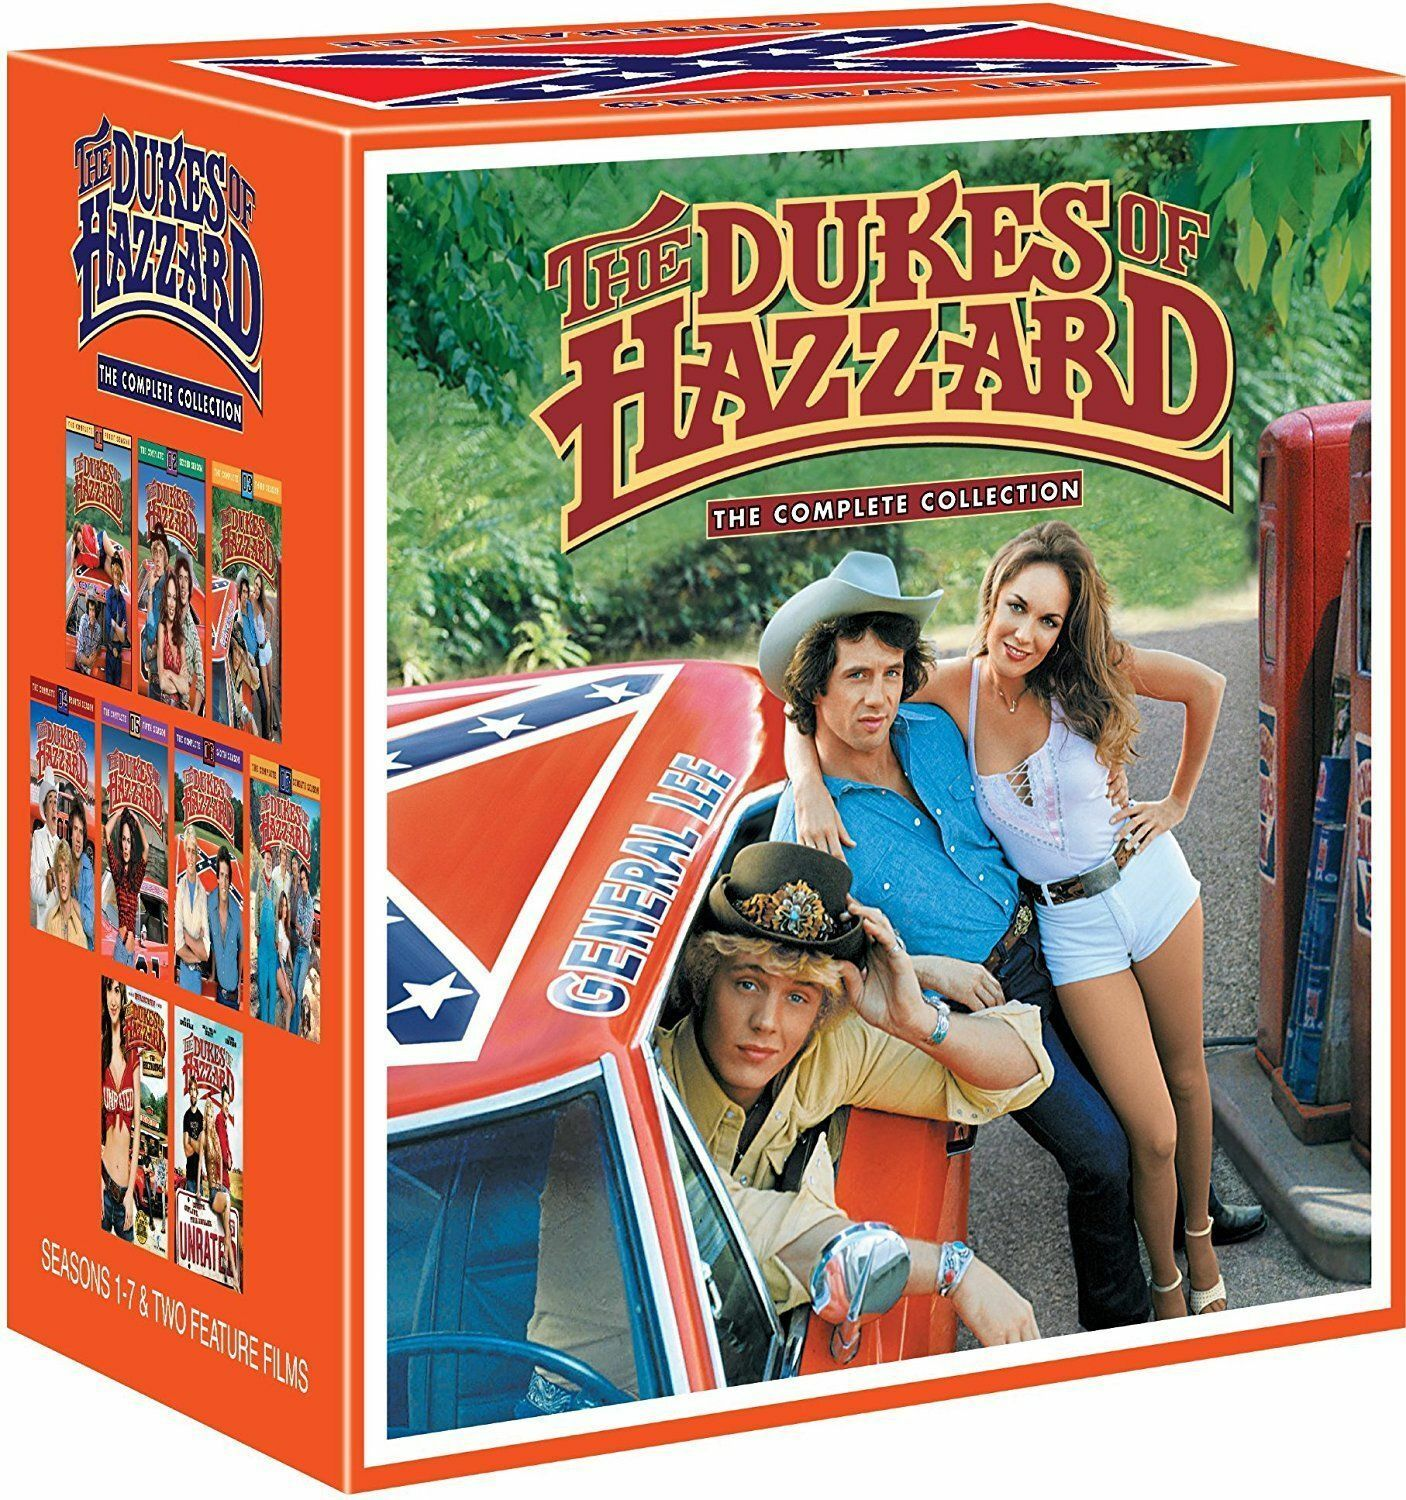 Изображение товара The Dukes of Hazzard Complete Series Collection Seasons 1-7+2 Movies DVD Box Set